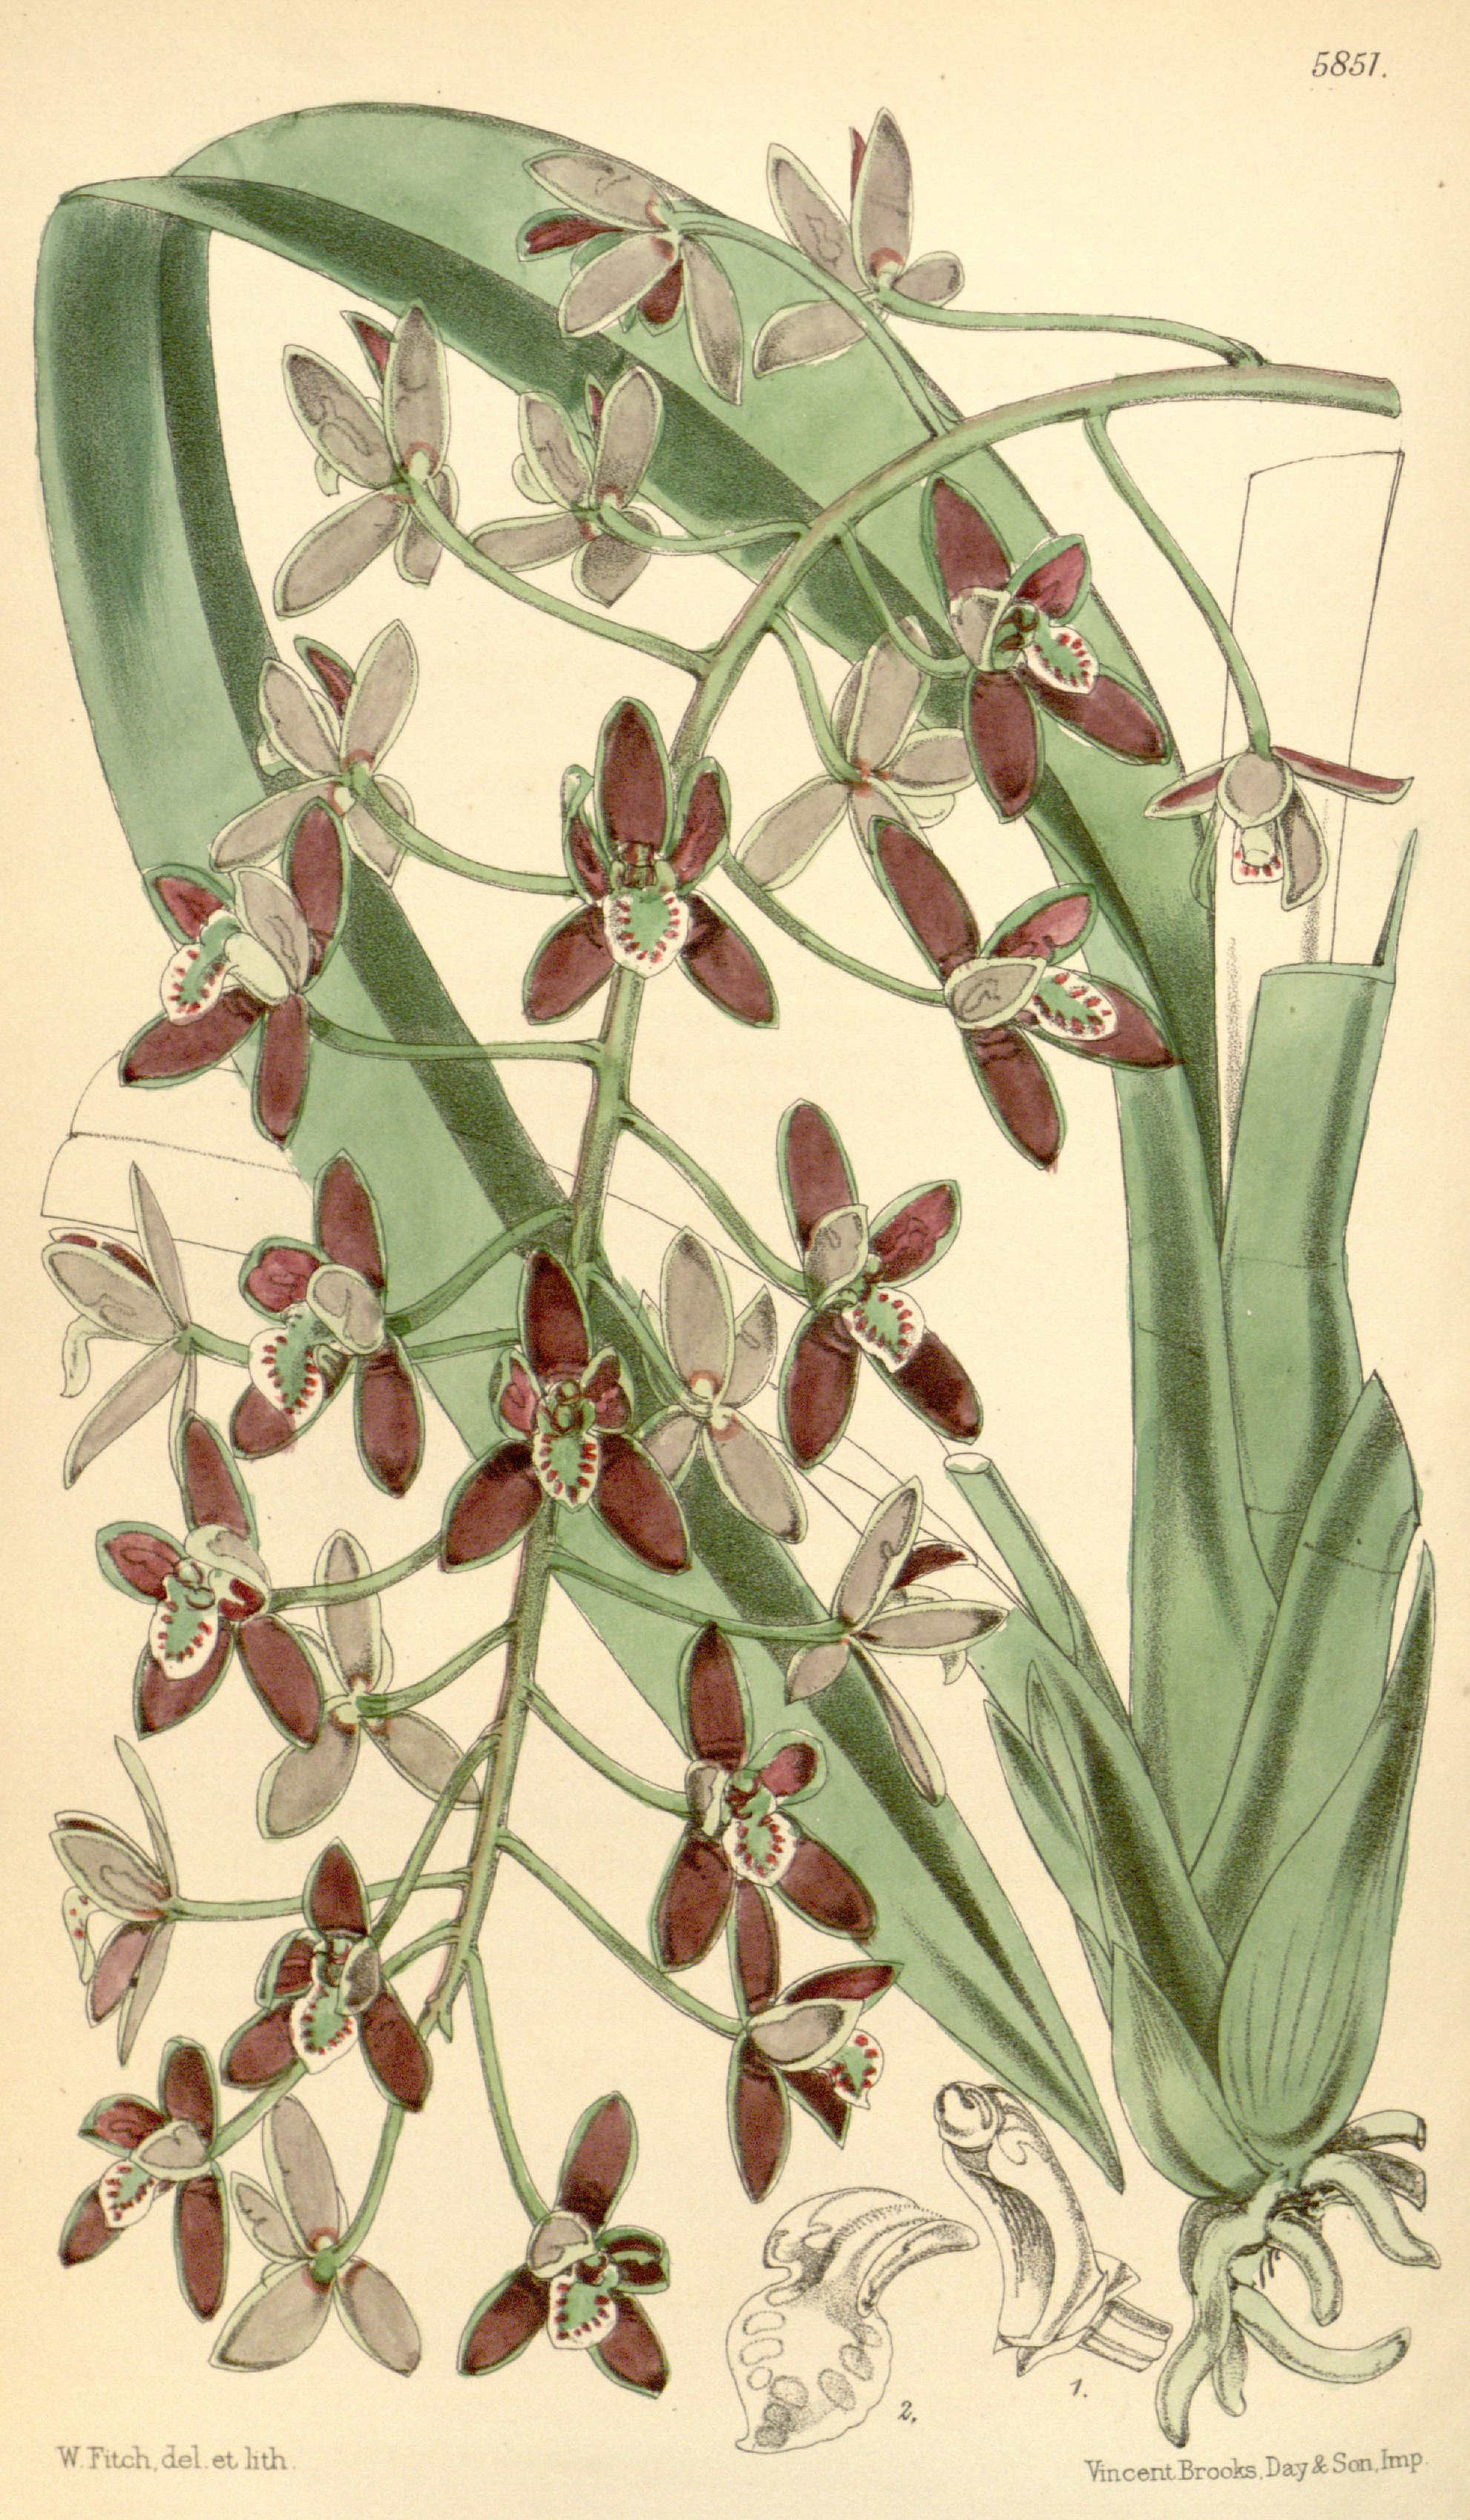 Illustration of Cymbidium canaliculatum